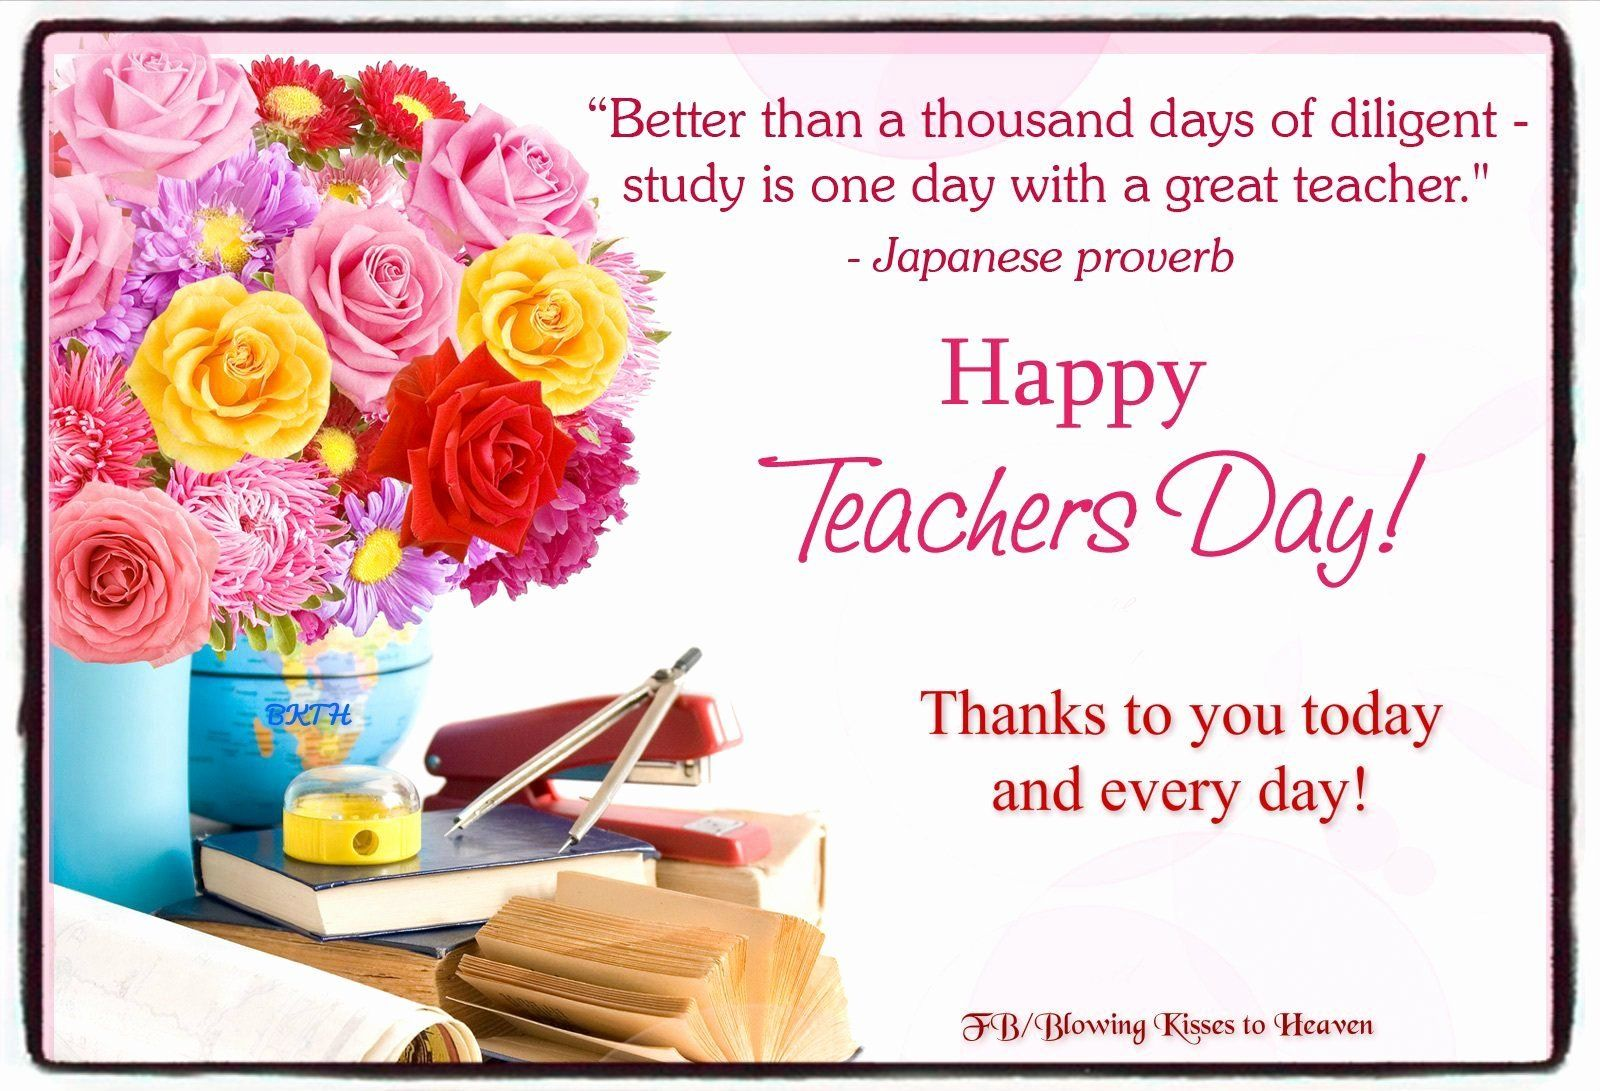 Teacher Appreciation Day Card Inspirational For Our Teachers In Heaven Happy Teacher In 2020 Happy Teachers Day Wishes Happy Teachers Day Message Teachers Day Message